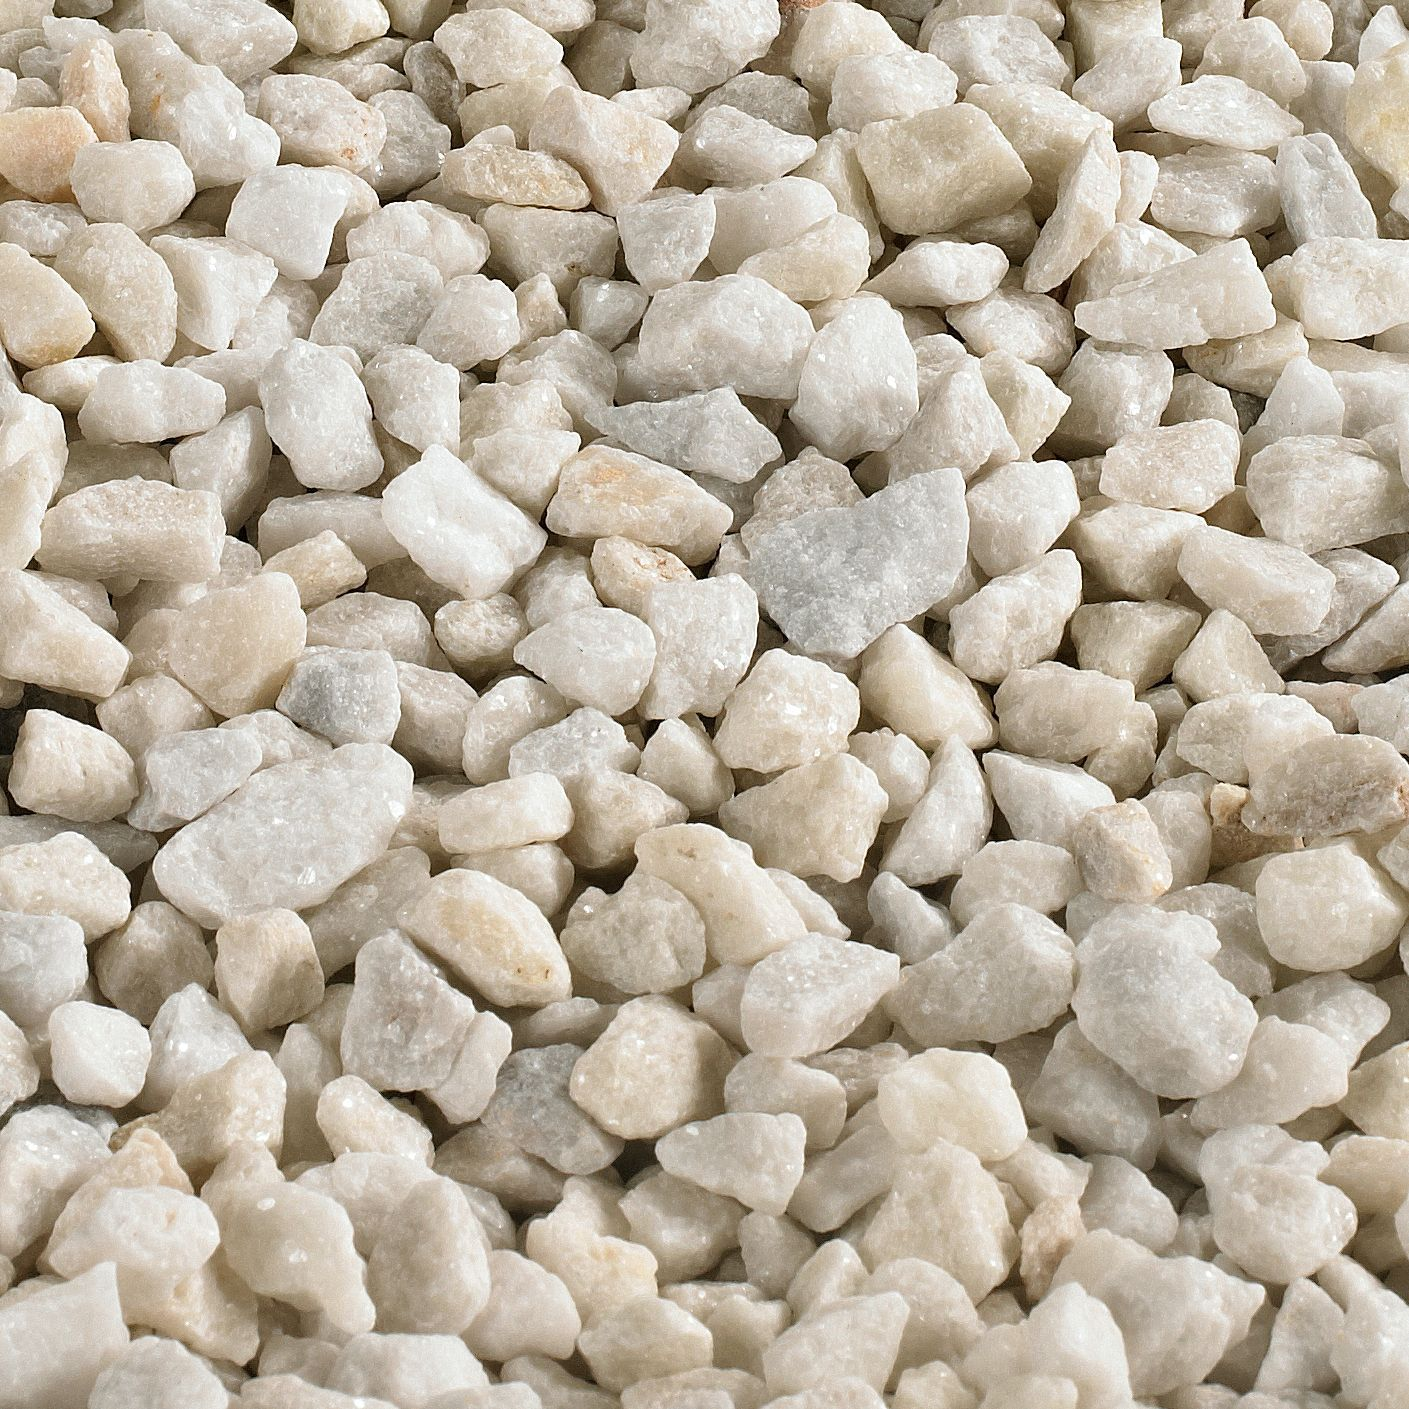 Landscape Gravel Bulk : White spar decorative stone kg bulk bag departments diy at b q